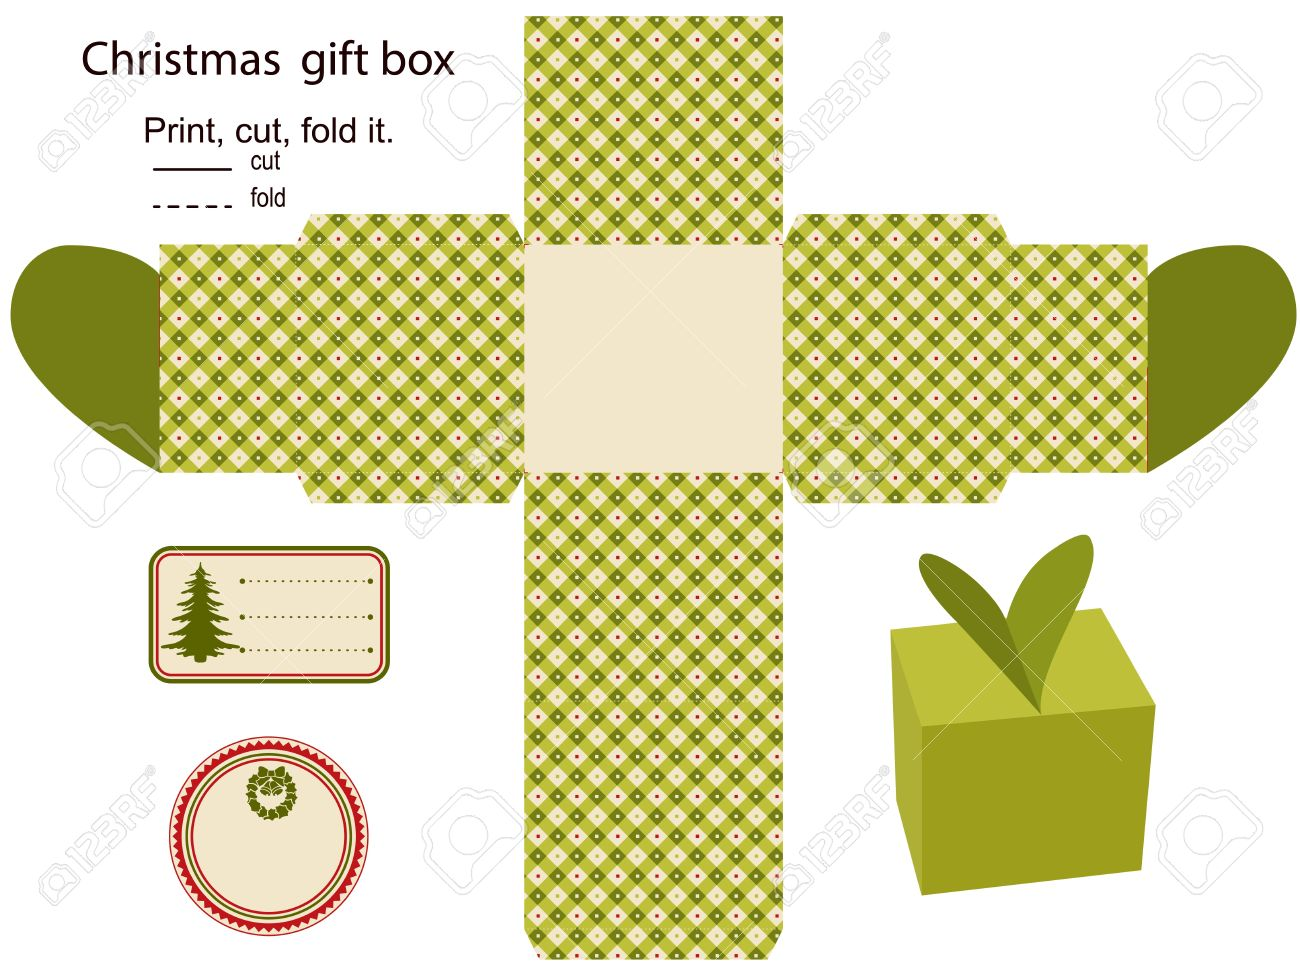 gift box isolated christmas pattern empty label template royalty gift box isolated christmas pattern empty label template stock vector 15762020